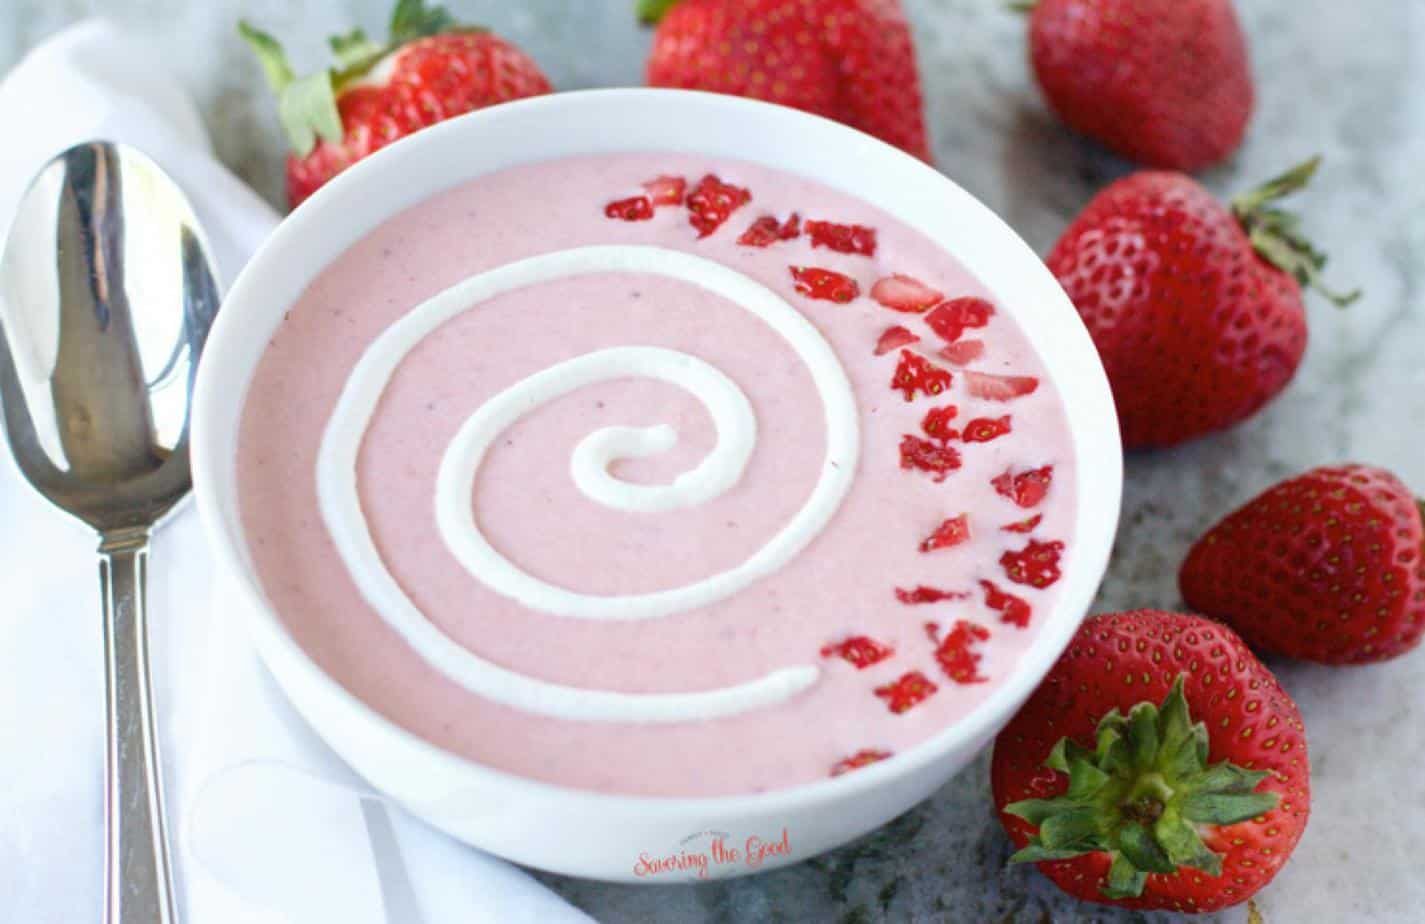 Strawberry Soup with silver spoon